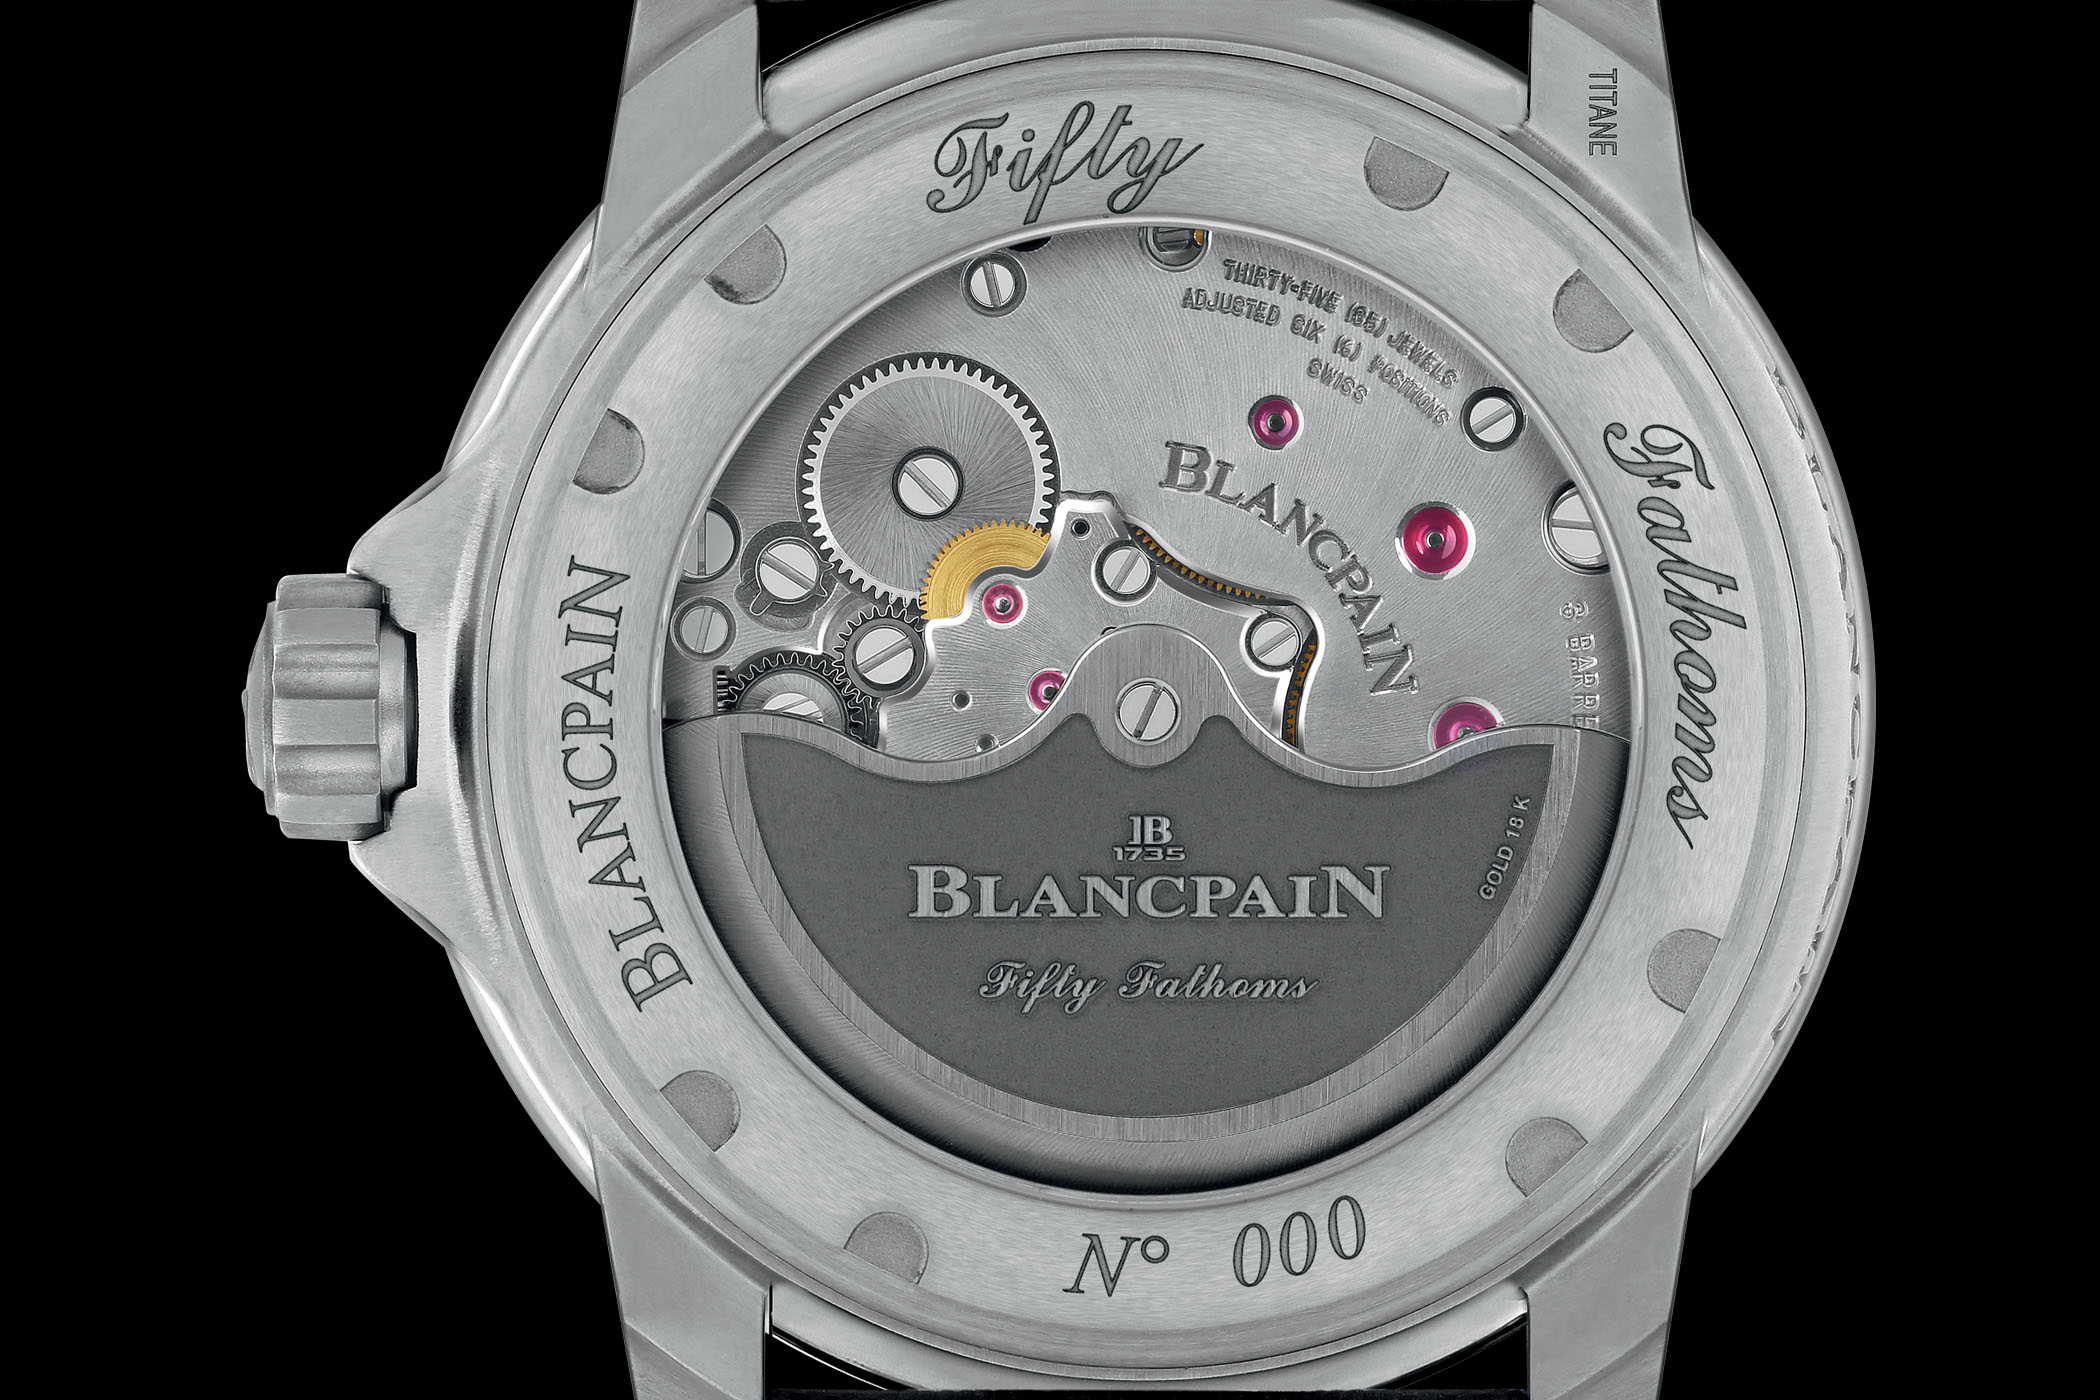 Blancpain's new Fifty Fathoms Automatique in Titanium Blancpain-Fifty-Fathoms-Automatique-5015-Titanium-3